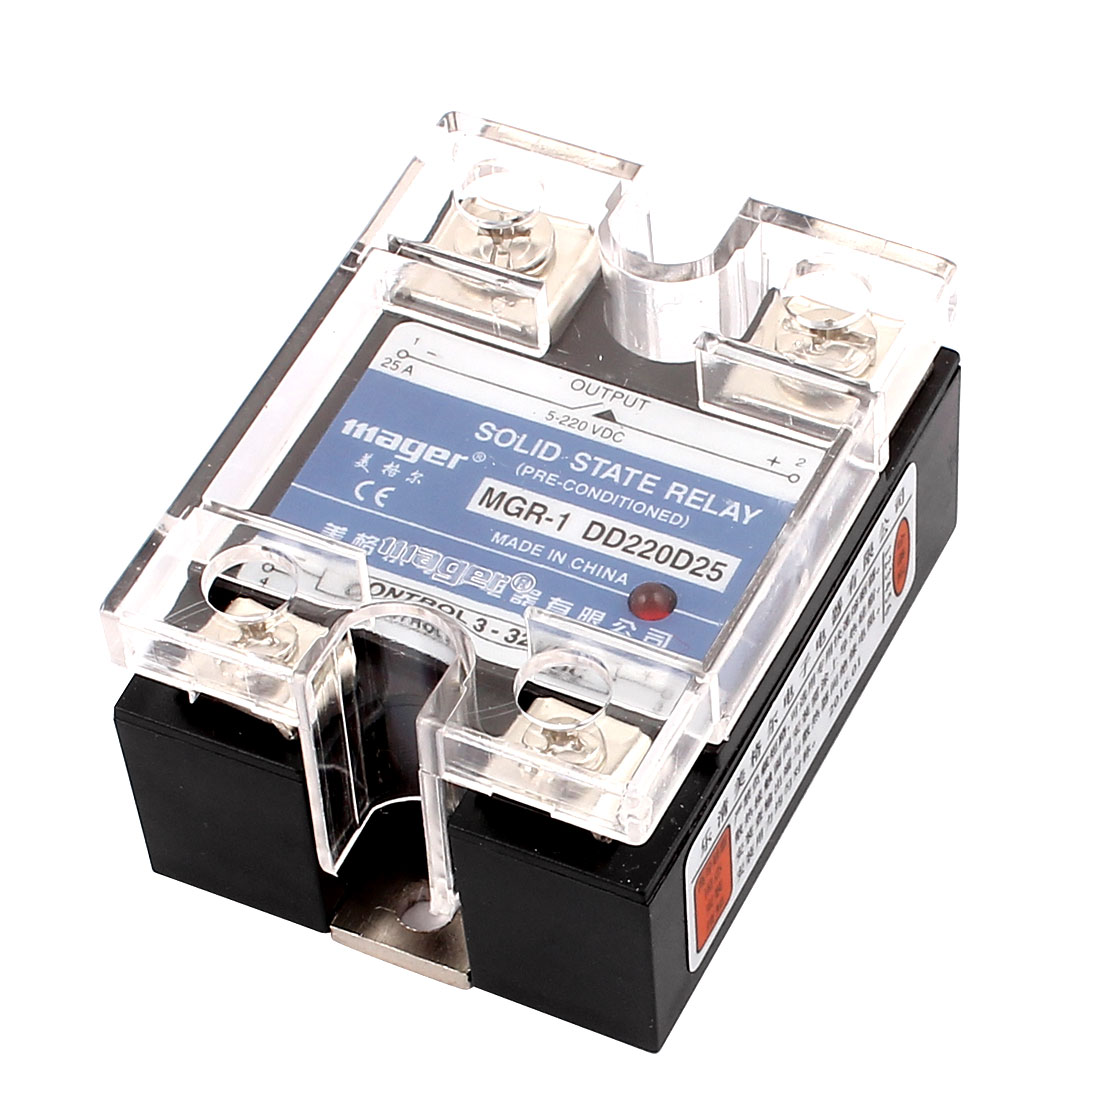 Solid State Relay Module MGR-1 DD220D25 DC-DC 3-32VDC to 5-220VDC